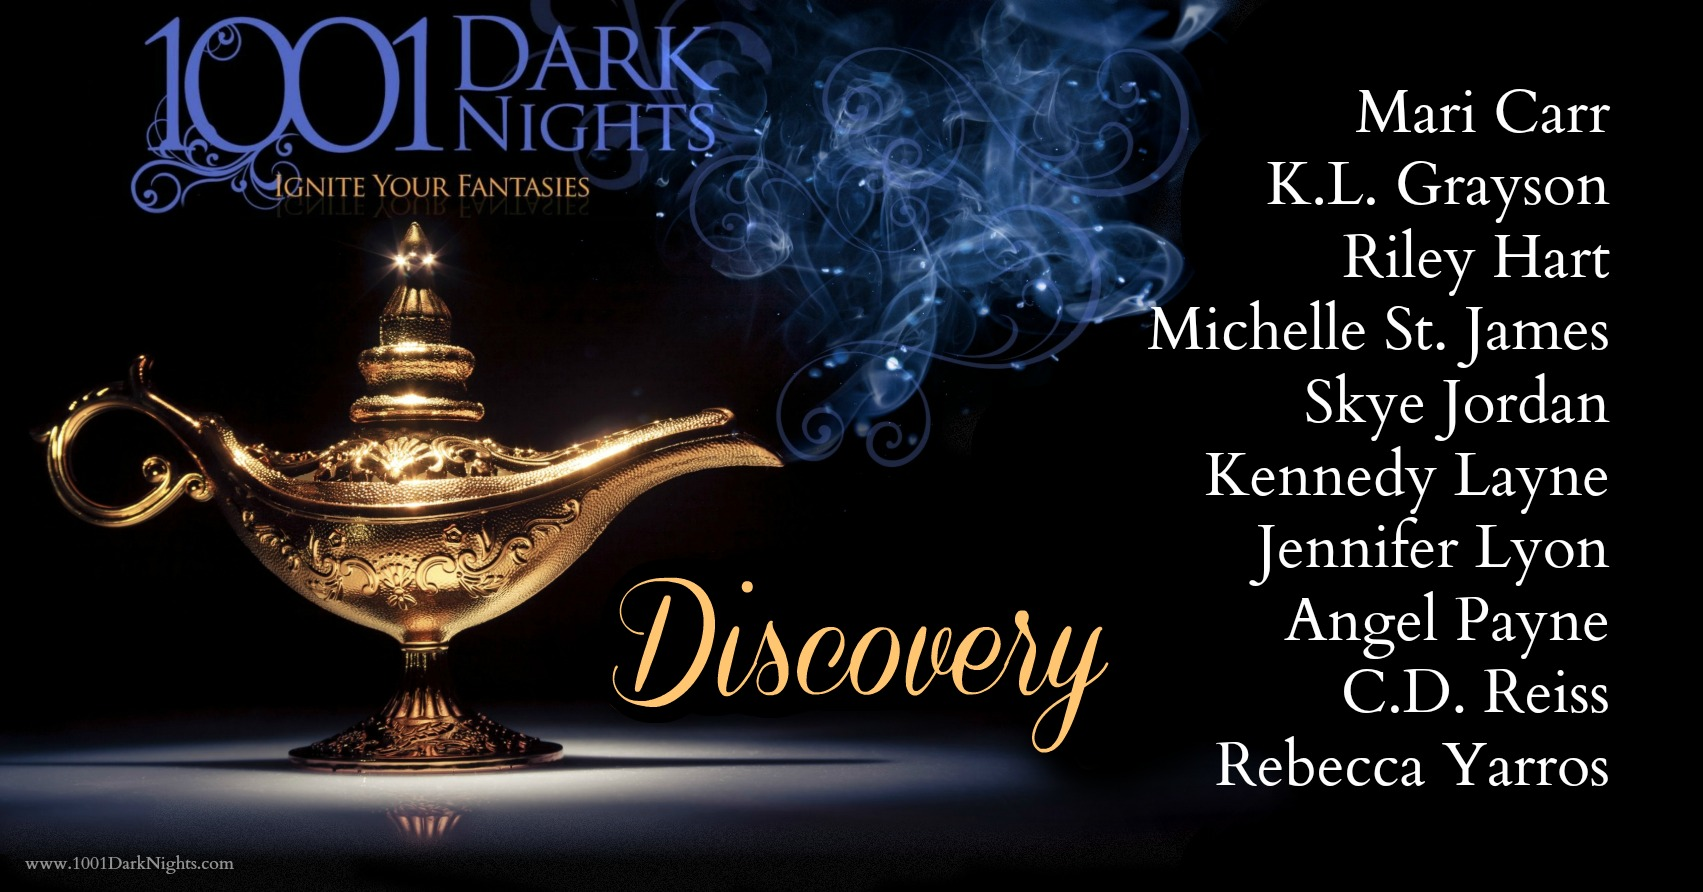 *for Help Downloading And Reading The Free Ebook, Please Contact  Support@1001darknights